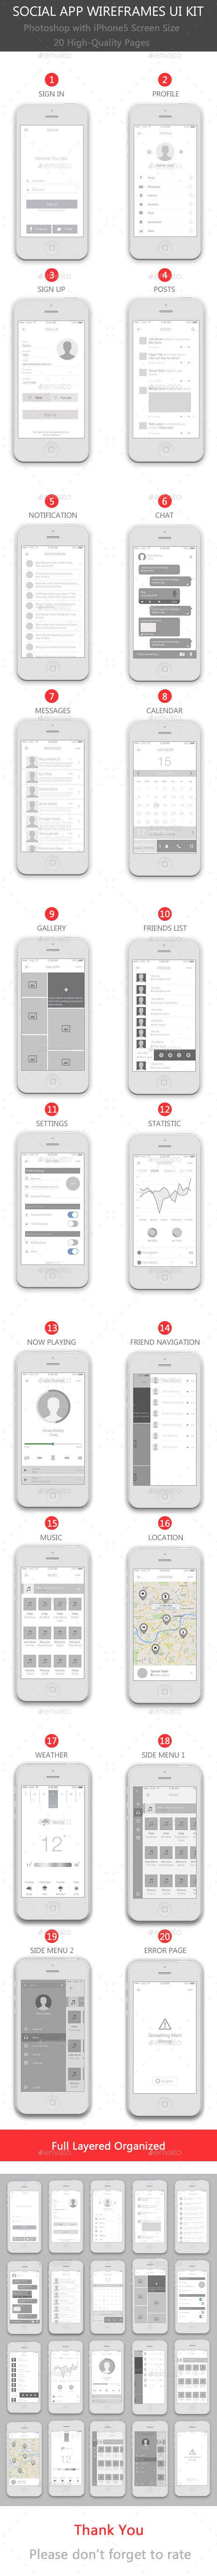 Social App Wireframes UI Kit - User Interfaces Web Elements